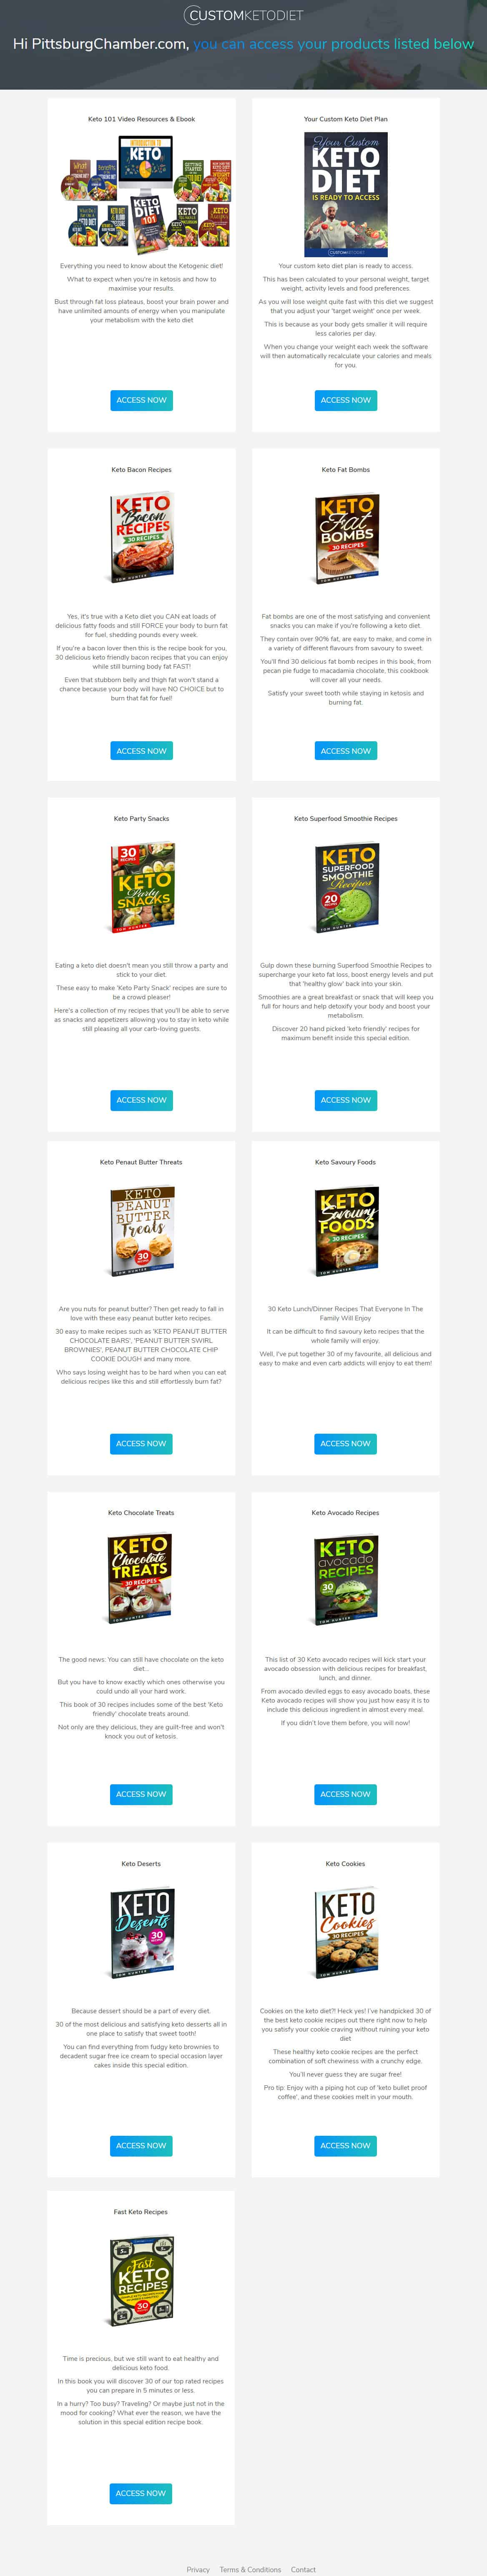 Online Coupon 20 Off Custom Keto Diet April  2020